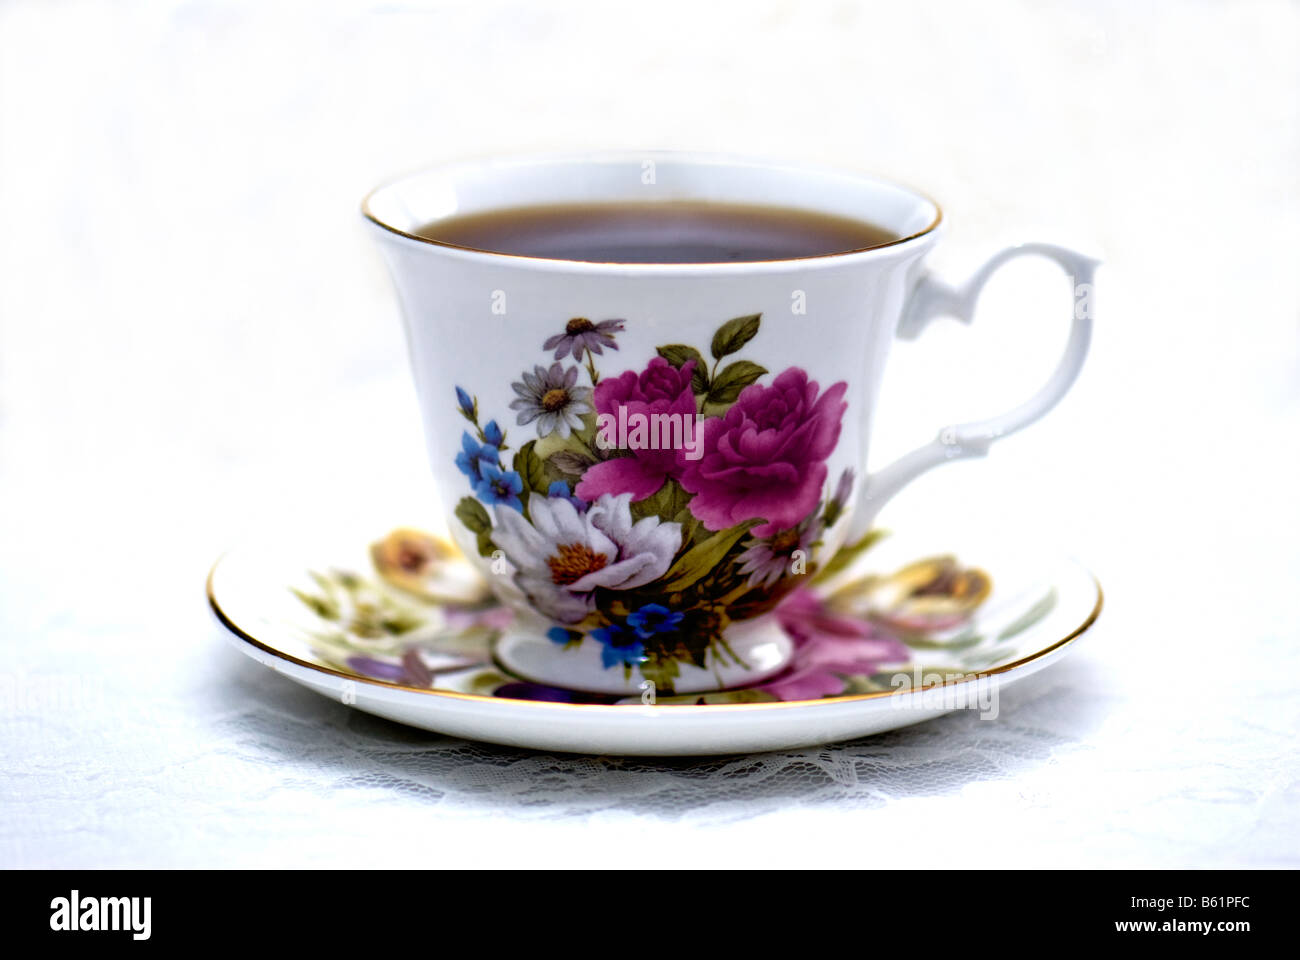 A cup of coffee in a floral cup and saucer, resting on a lace tablecloth. Stock Photo